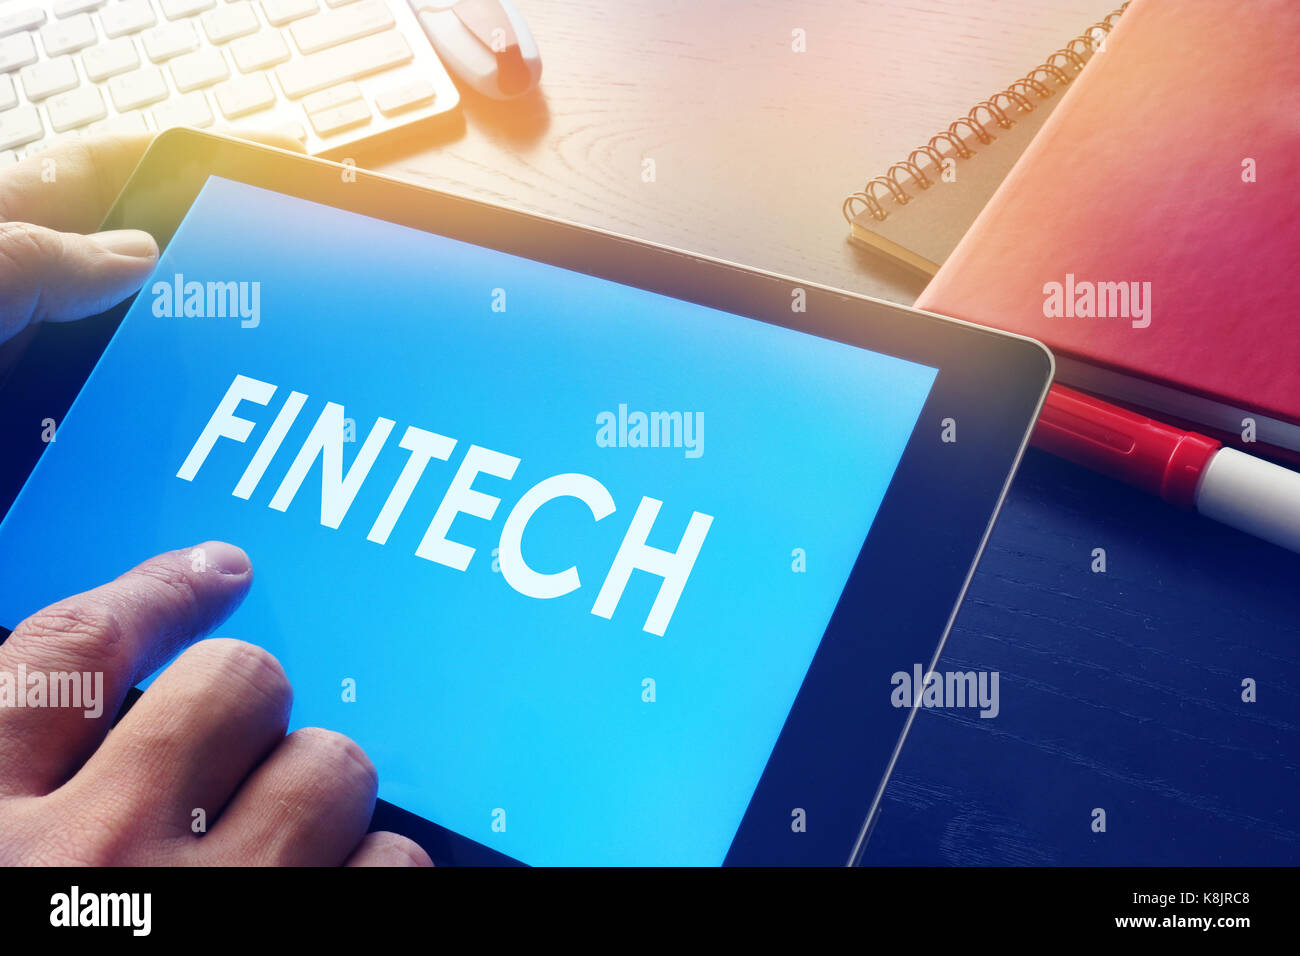 Businessman Reading à propos de la technologie financière fintech. concept. Photo Stock